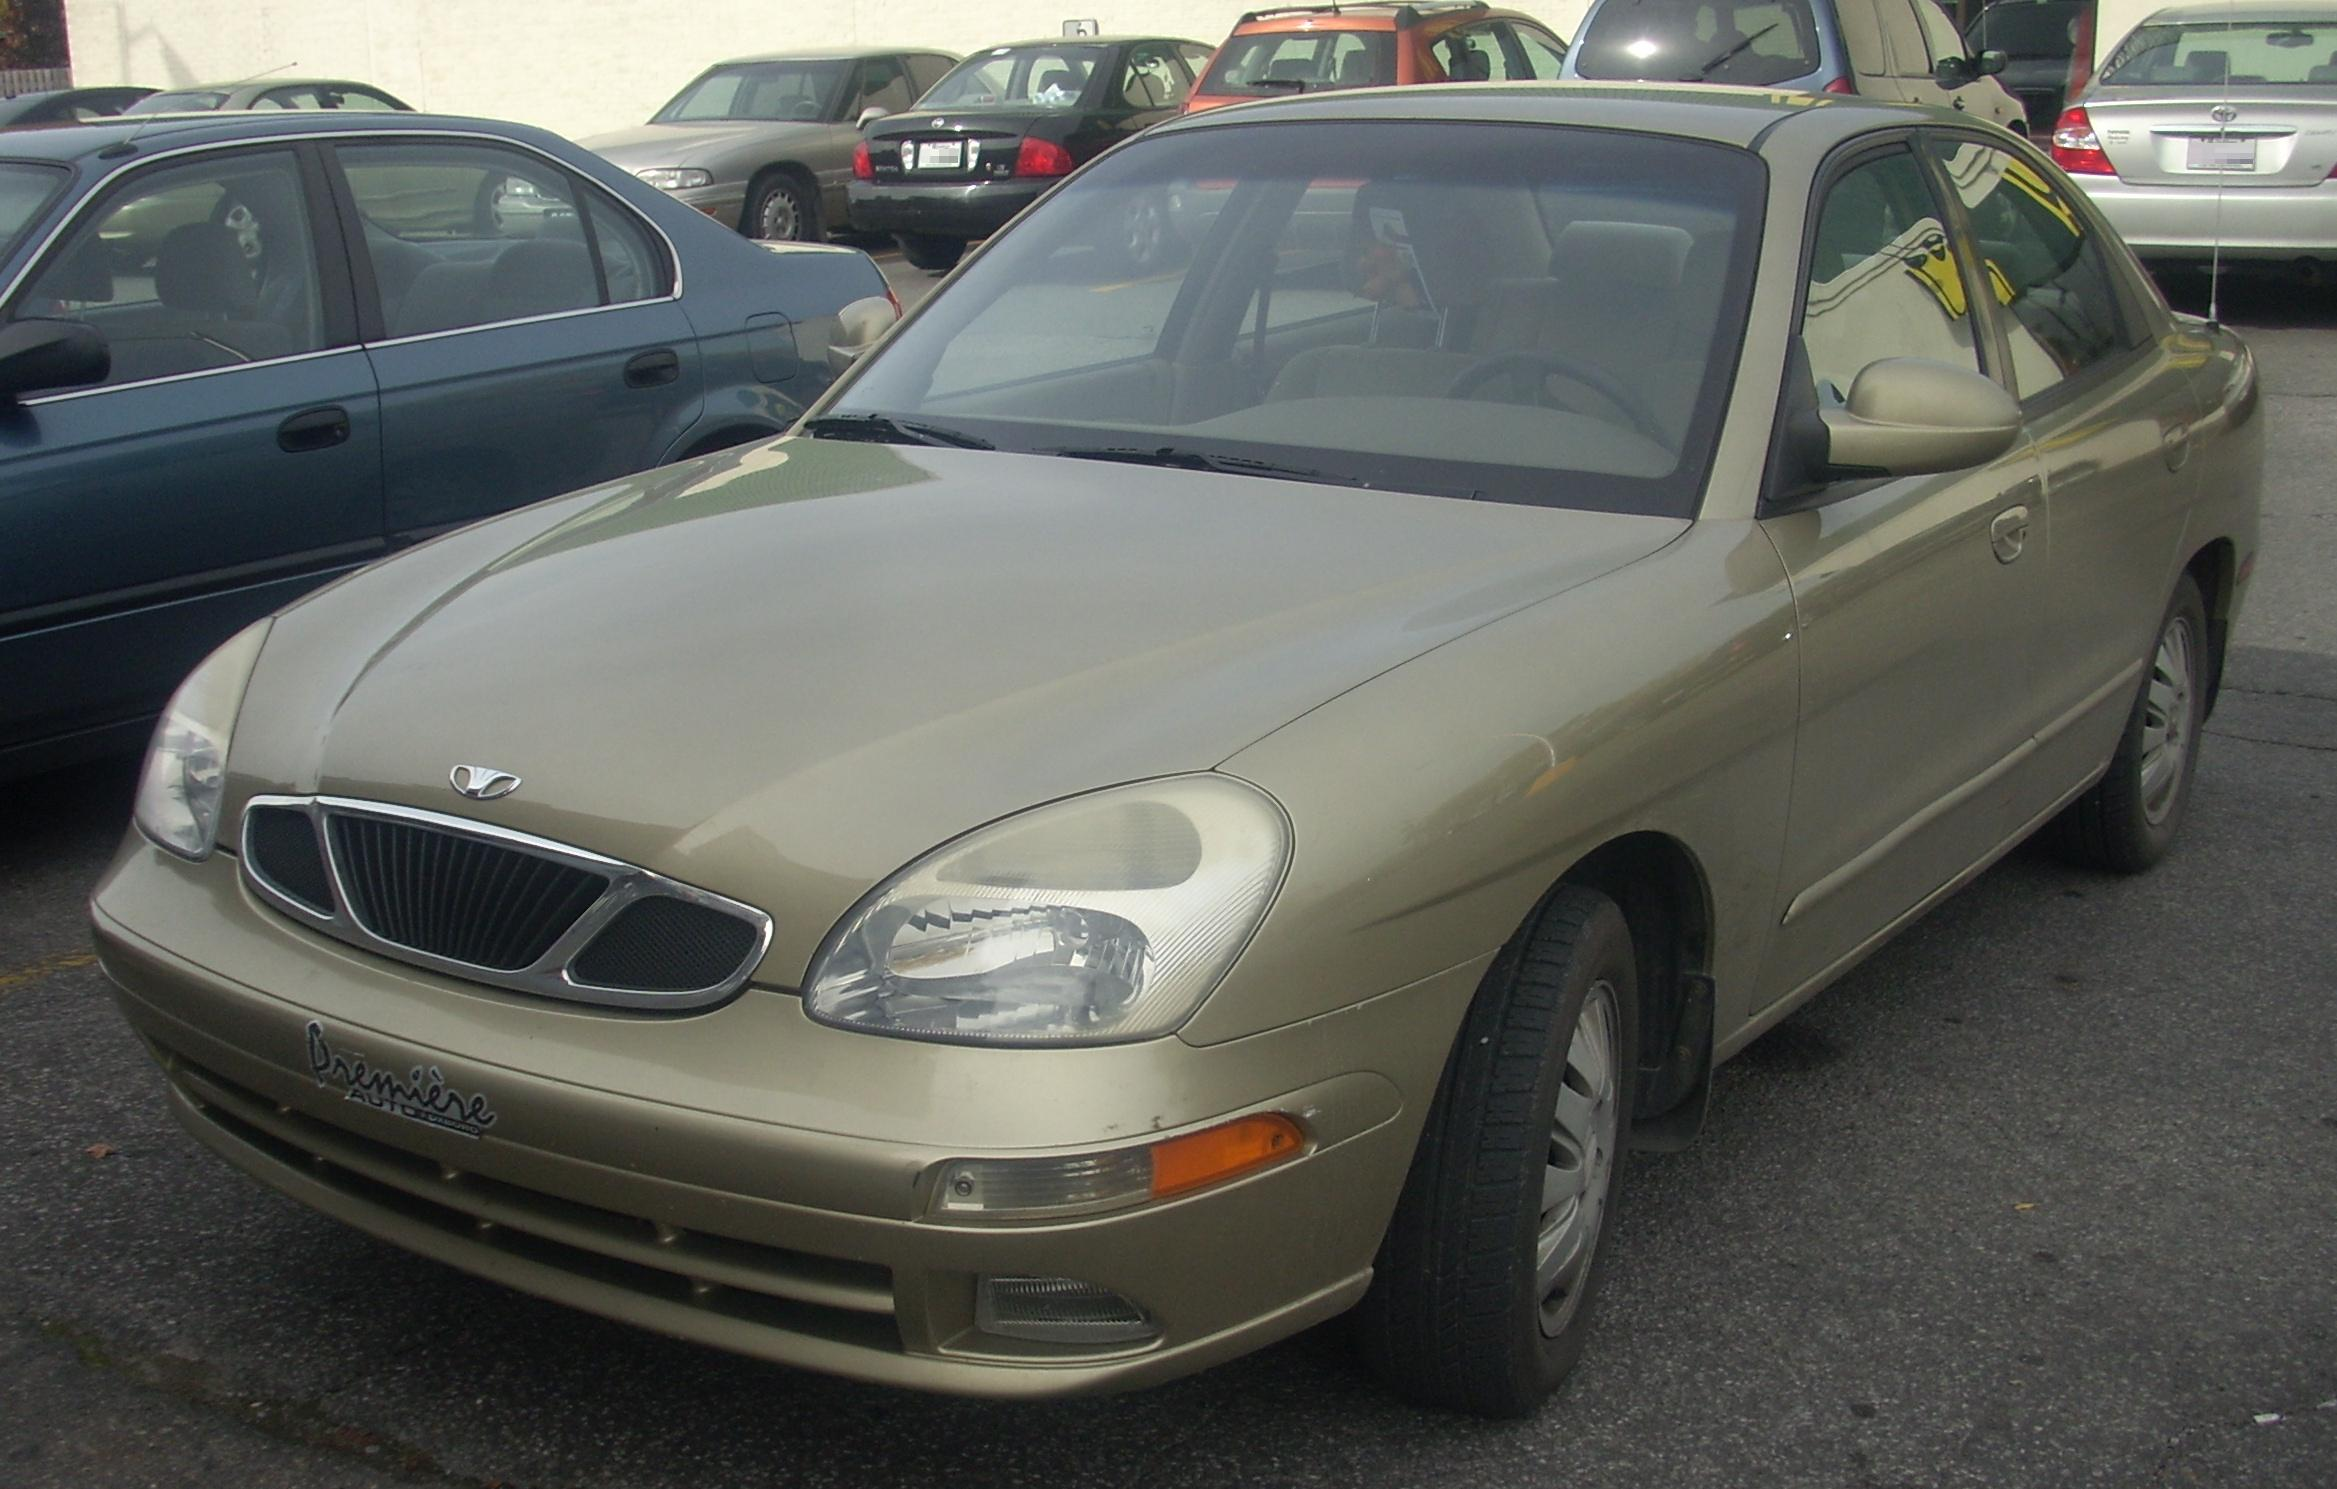 File:'00-'02 Daewoo Nubira Sedan.JPG - Wikipedia, the free ...